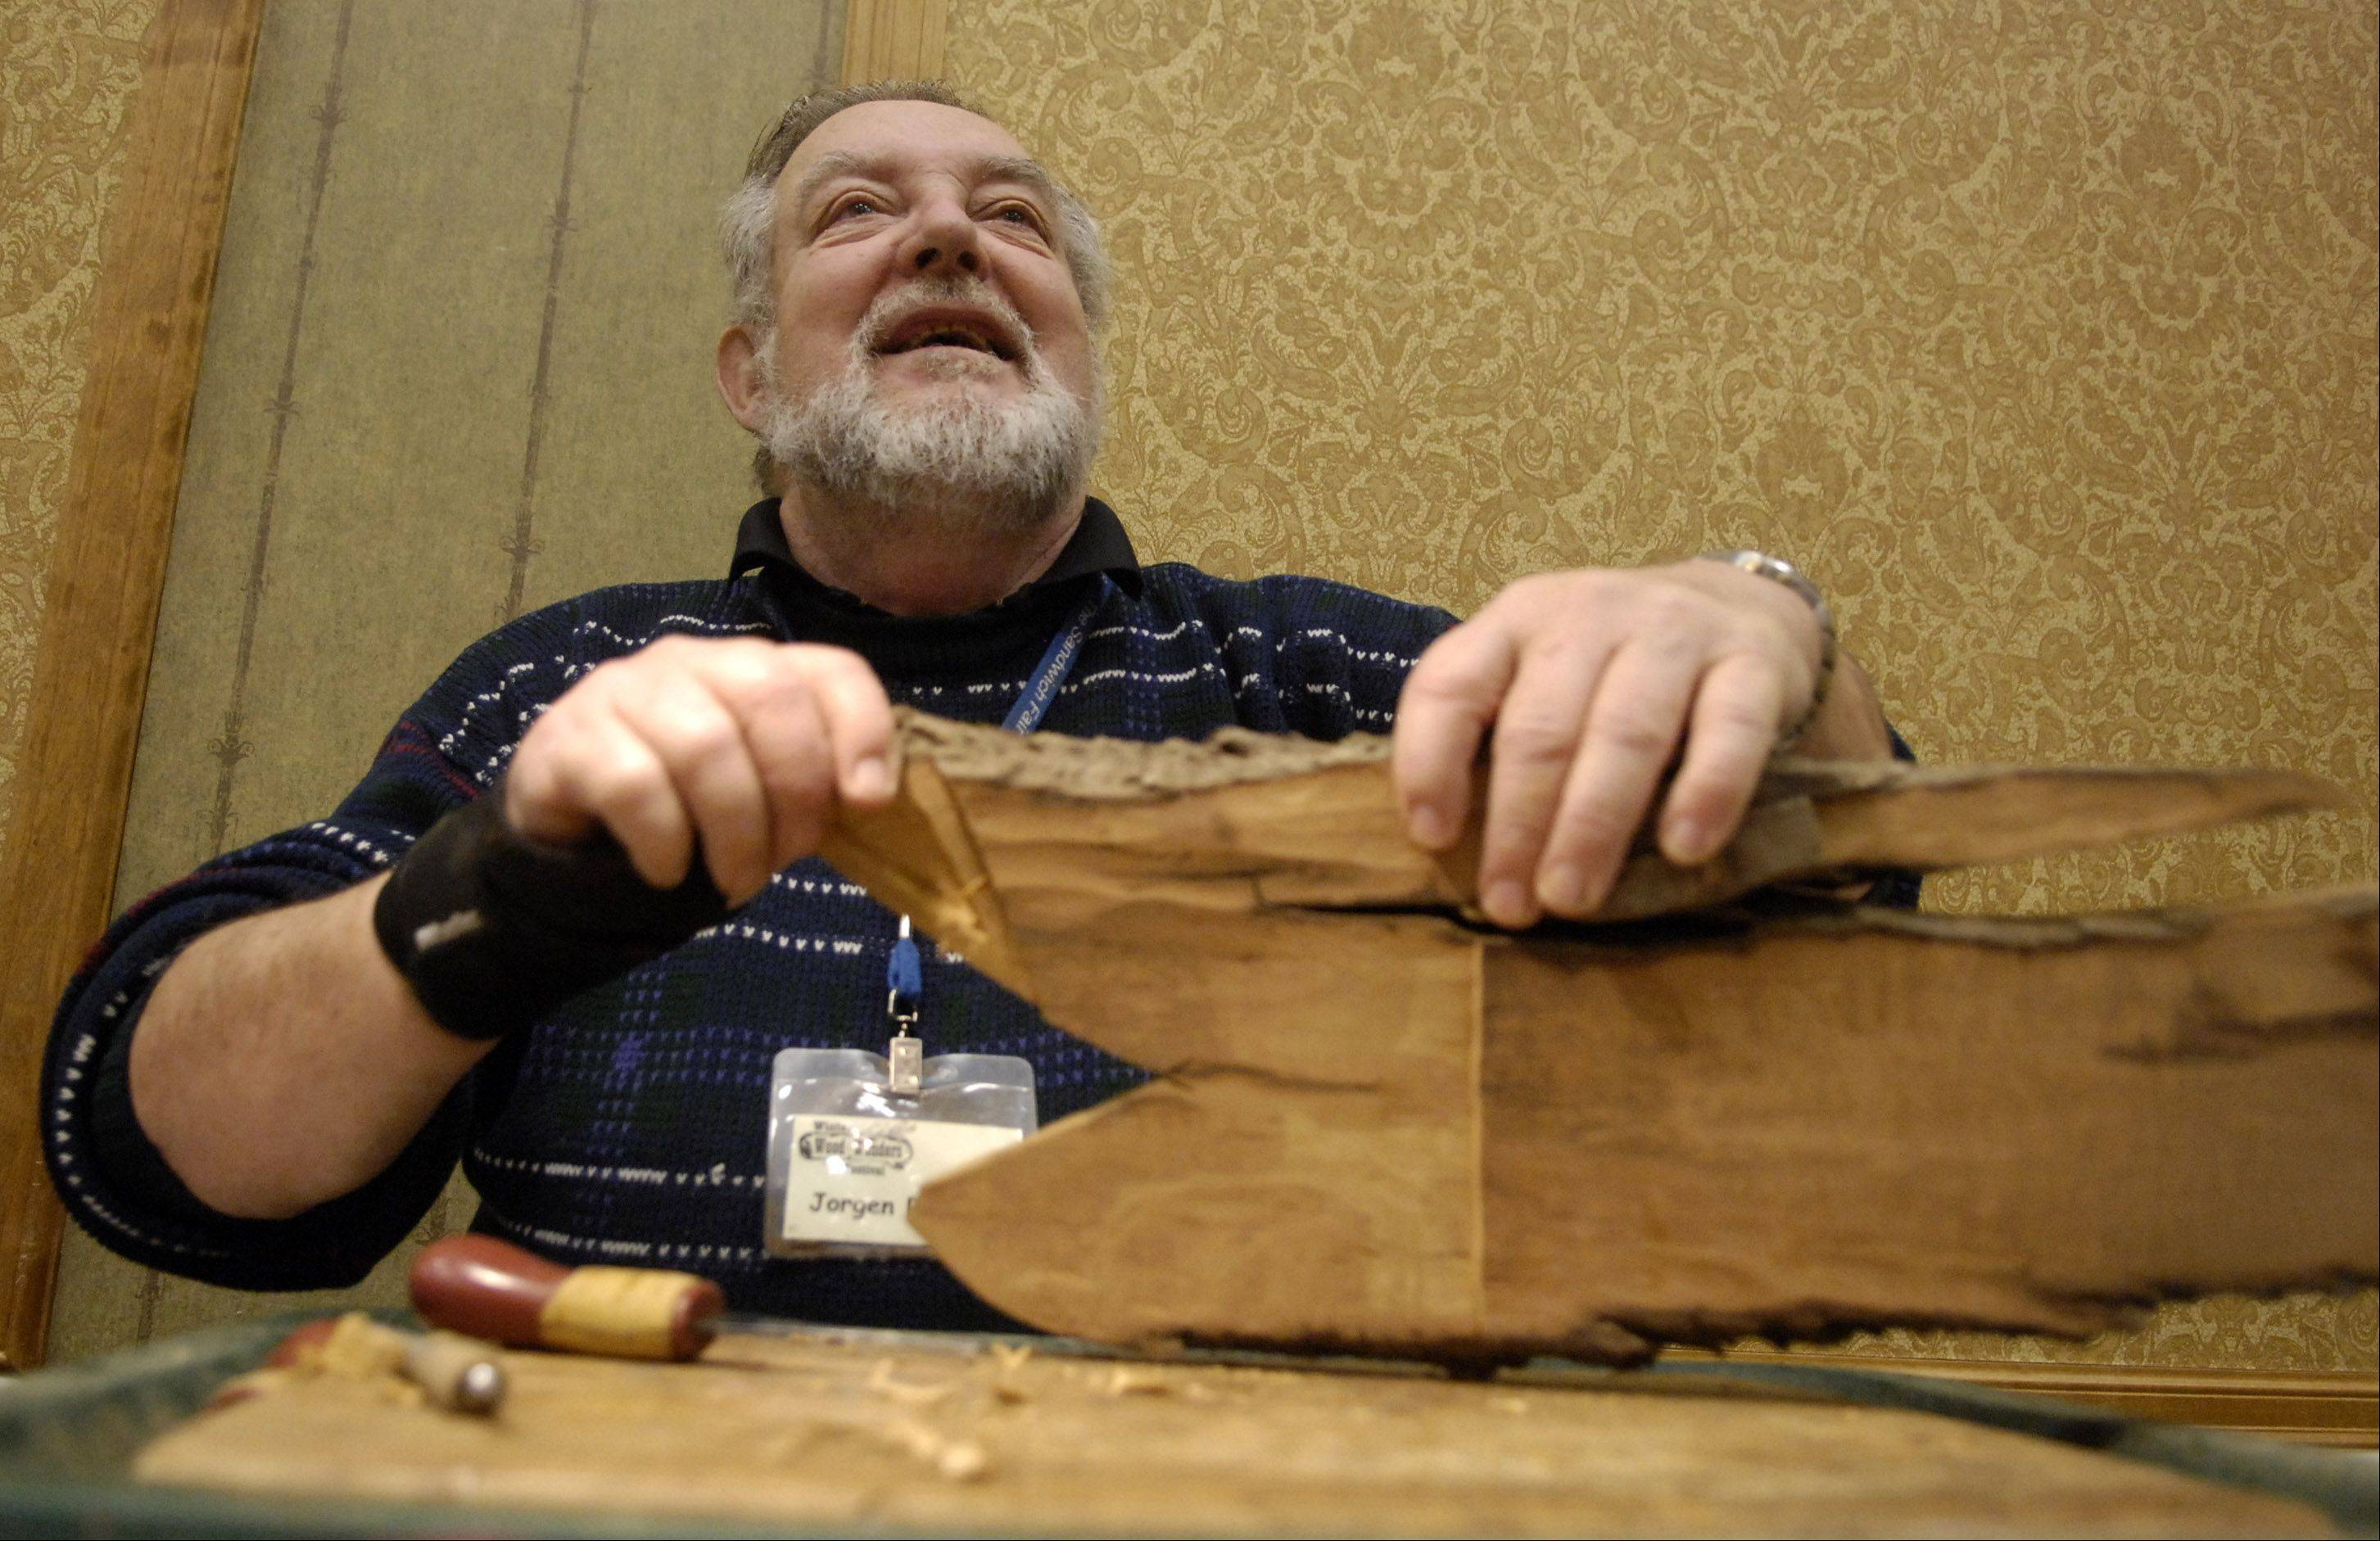 Jorgen Poulsen of Sandwich takes a break from working on a cottonwood bark carving to talk with a visitor at his display at a previous Winter Wood Wonders Festival.